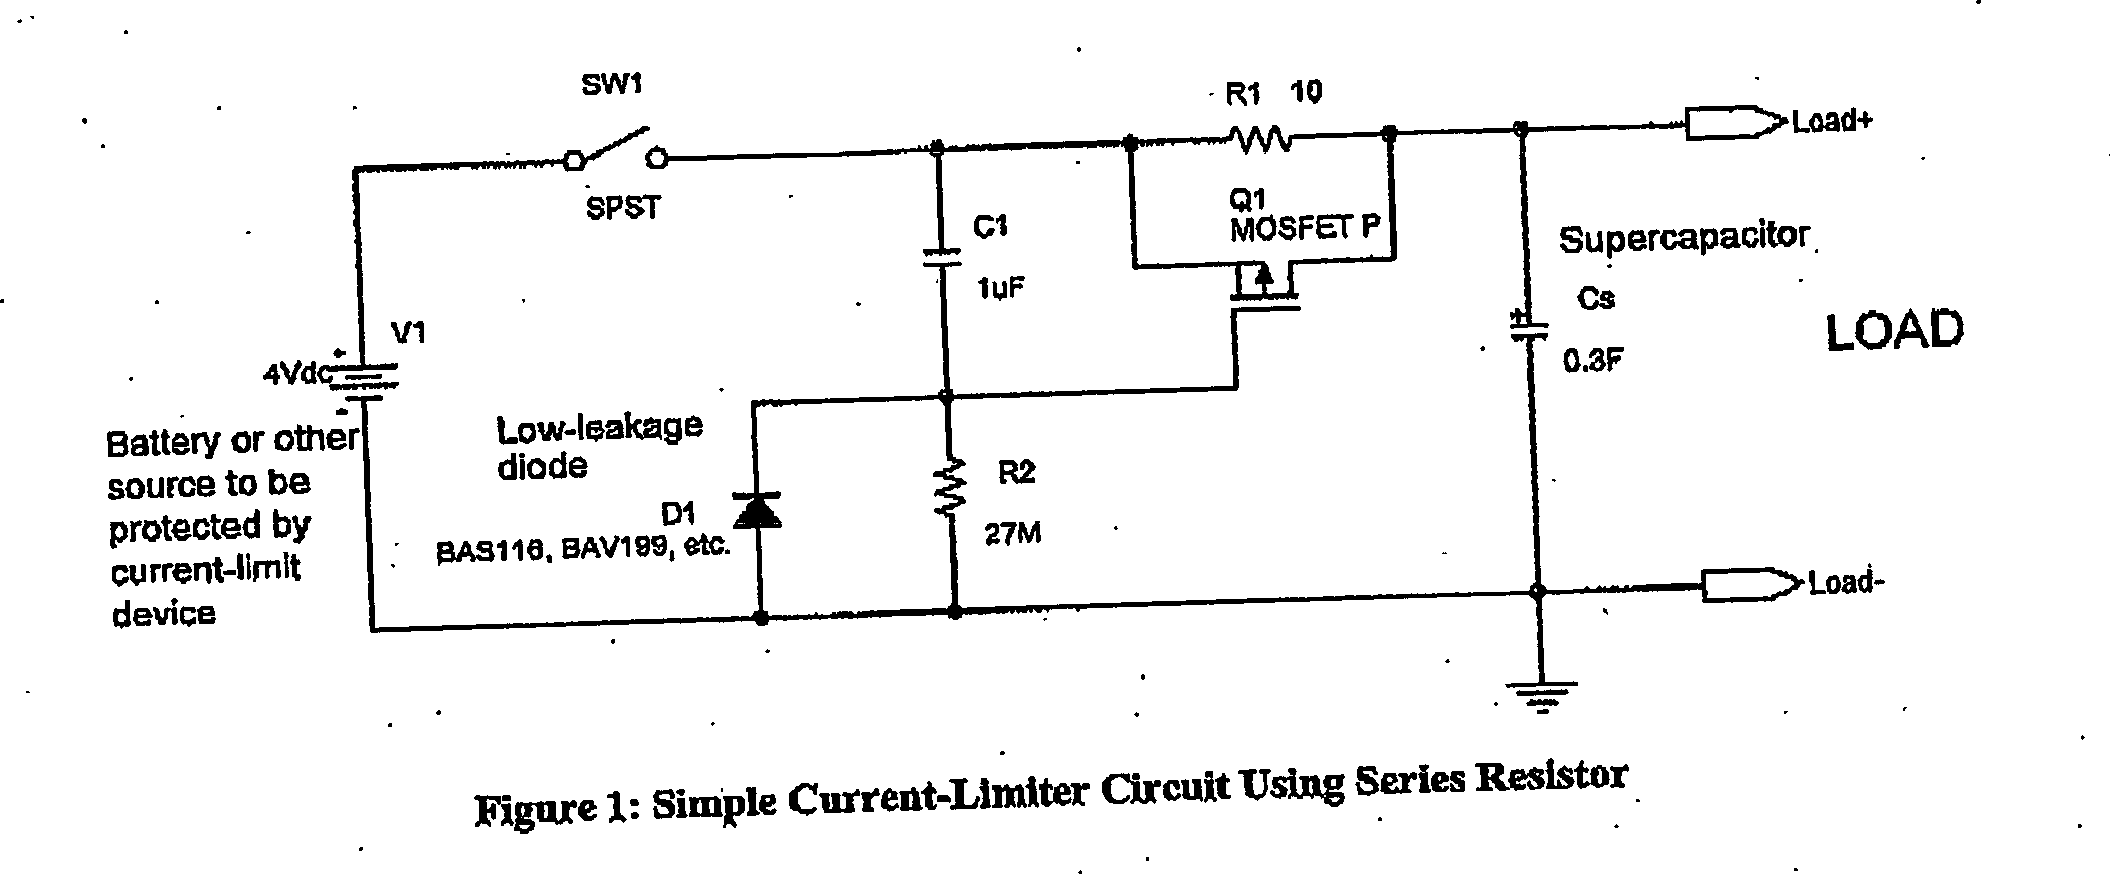 Us20060264189a1 Power Supply Google Patents First I Connected 1 Supercap And The Led Resistor Into Circuit Figure 20061123 P00001